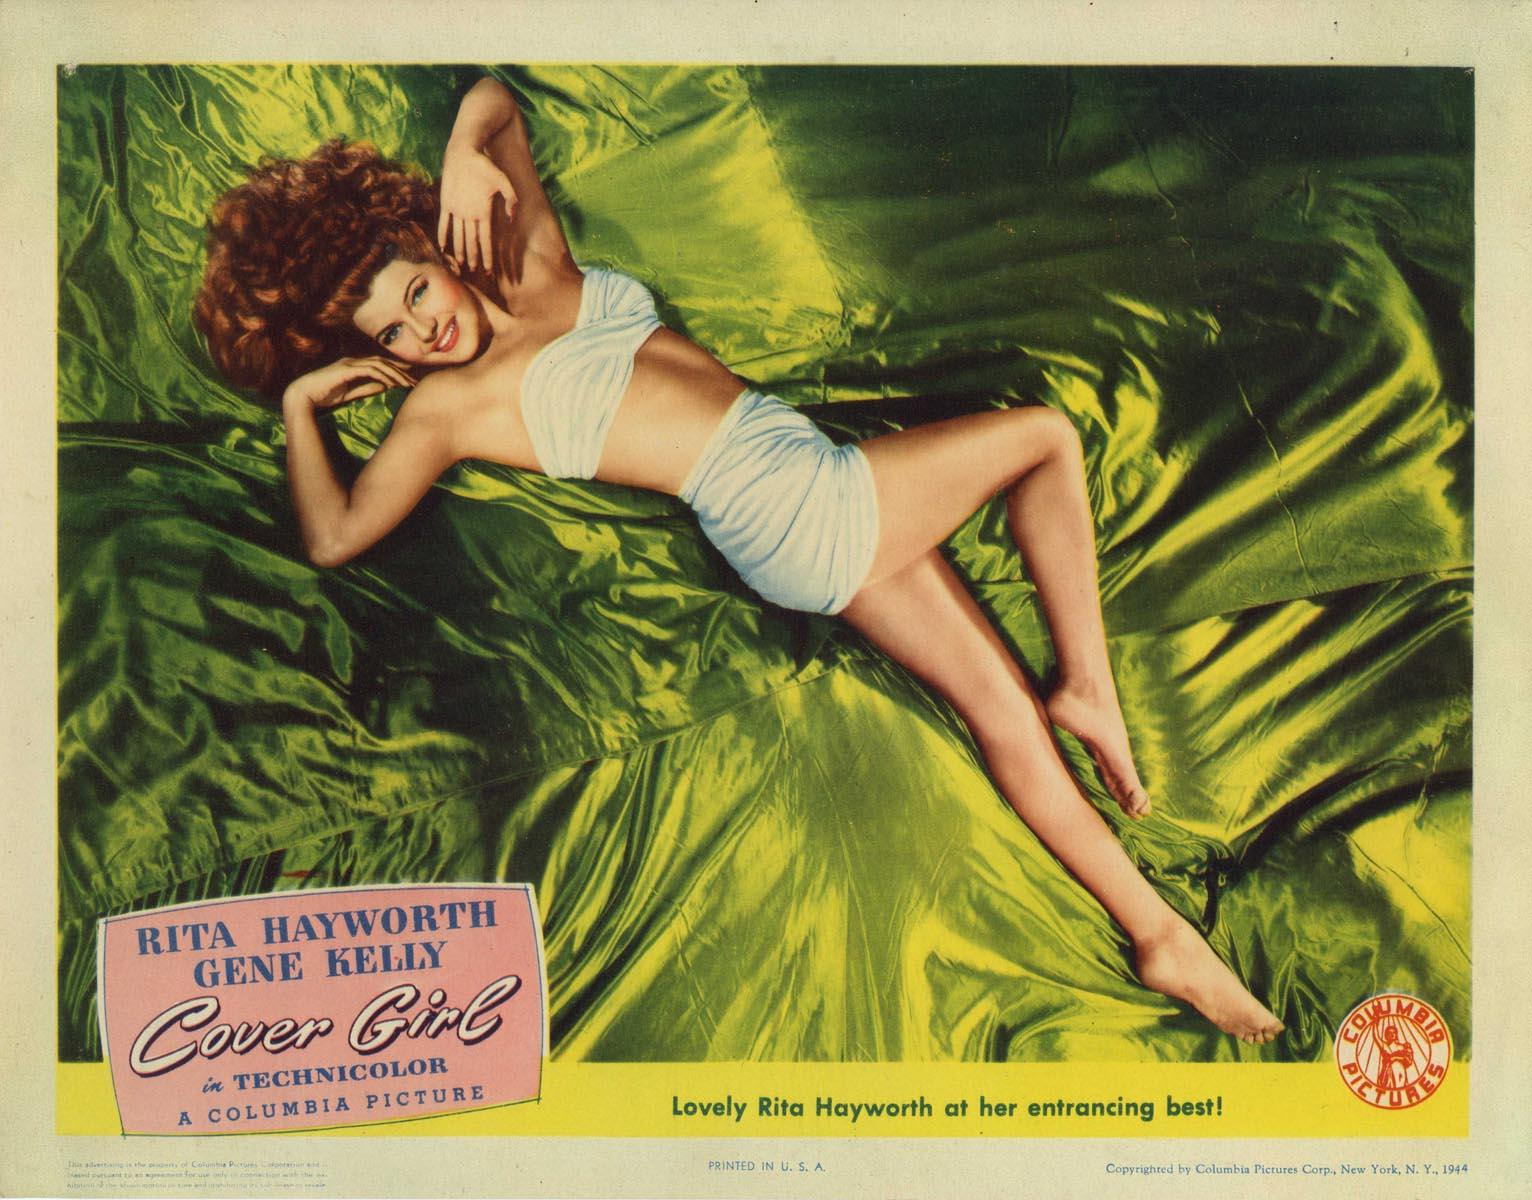 COVER GIRL (1944) Very Good